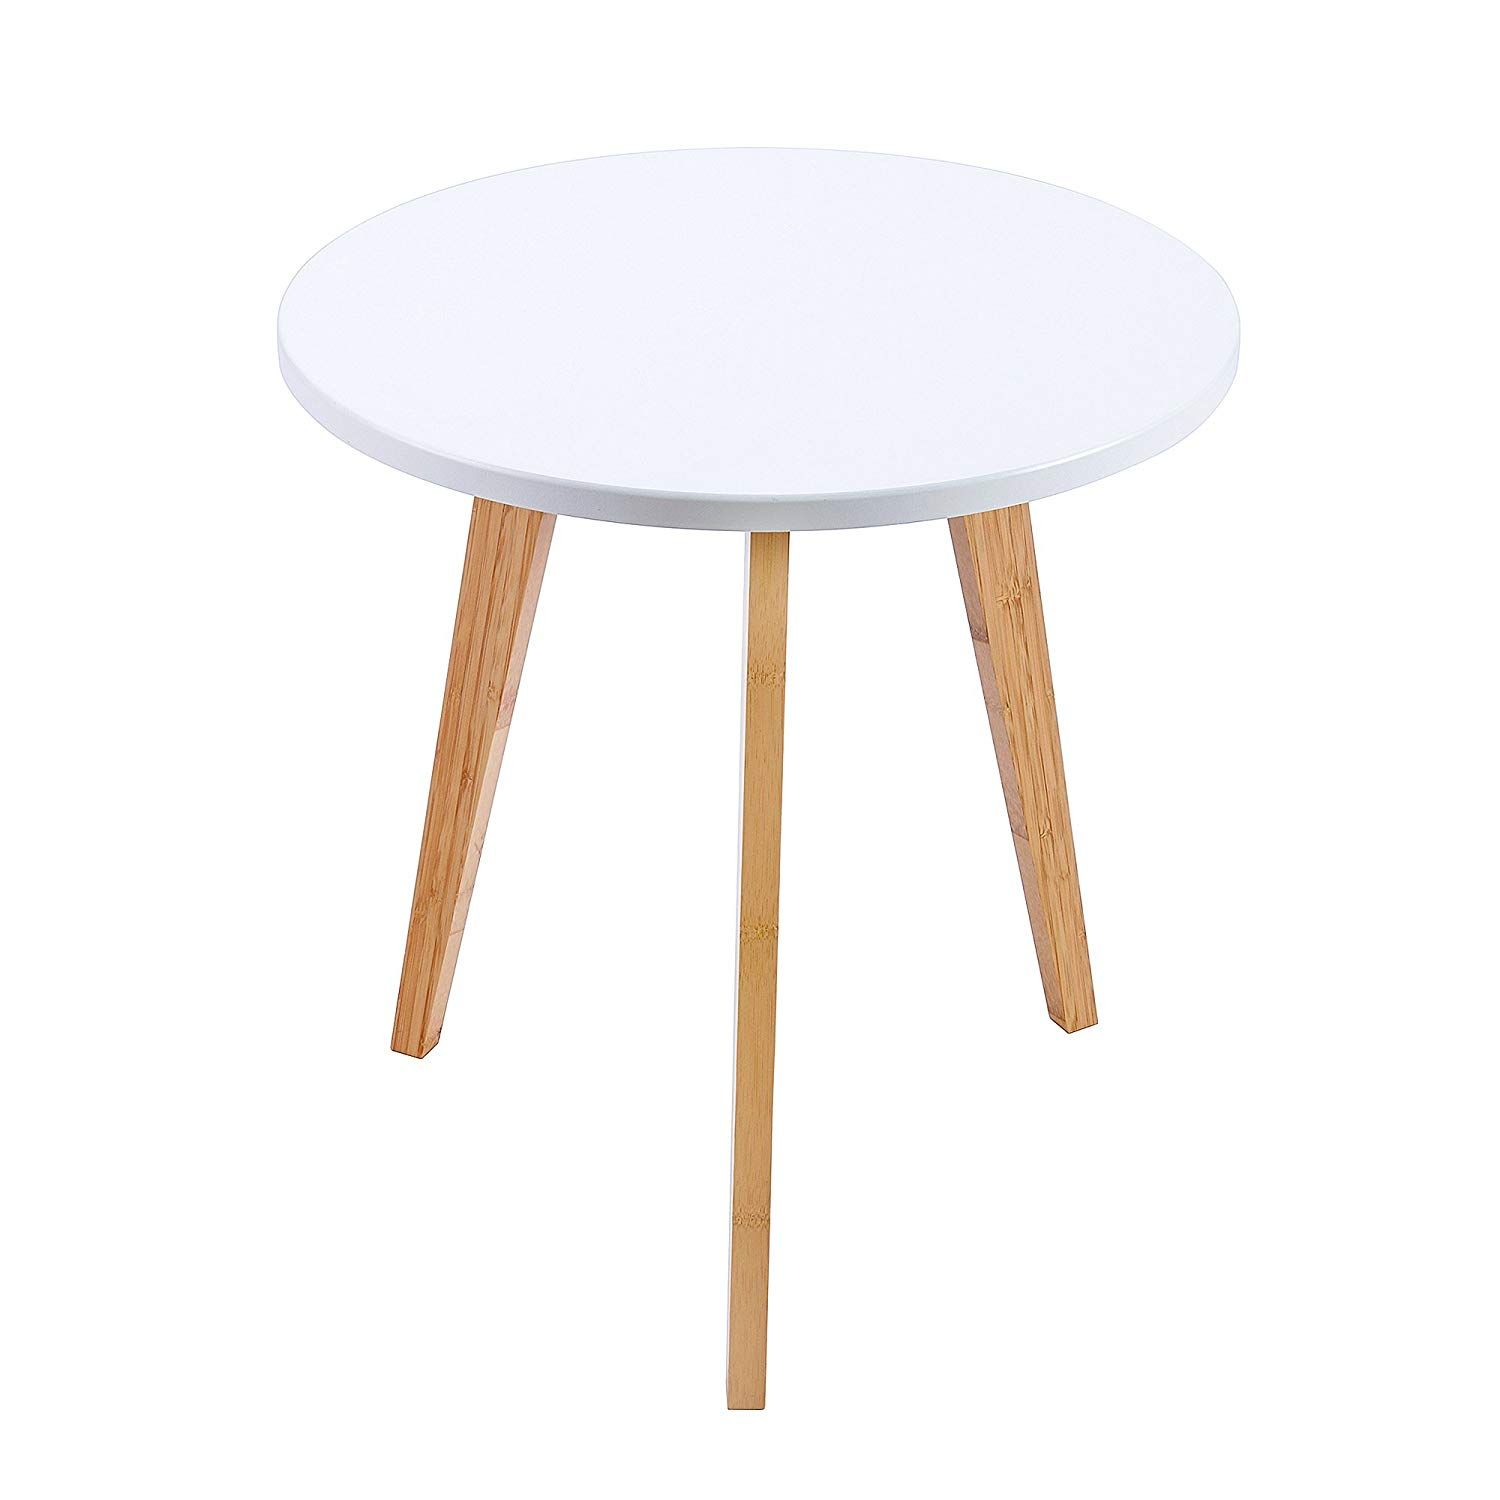 Wilshine Small Round End Table For Small Spaces In Living Room Bedroom With White Table Top And 3 Natur In 2020 With Images Table For Small Space White Table Top White Small Table